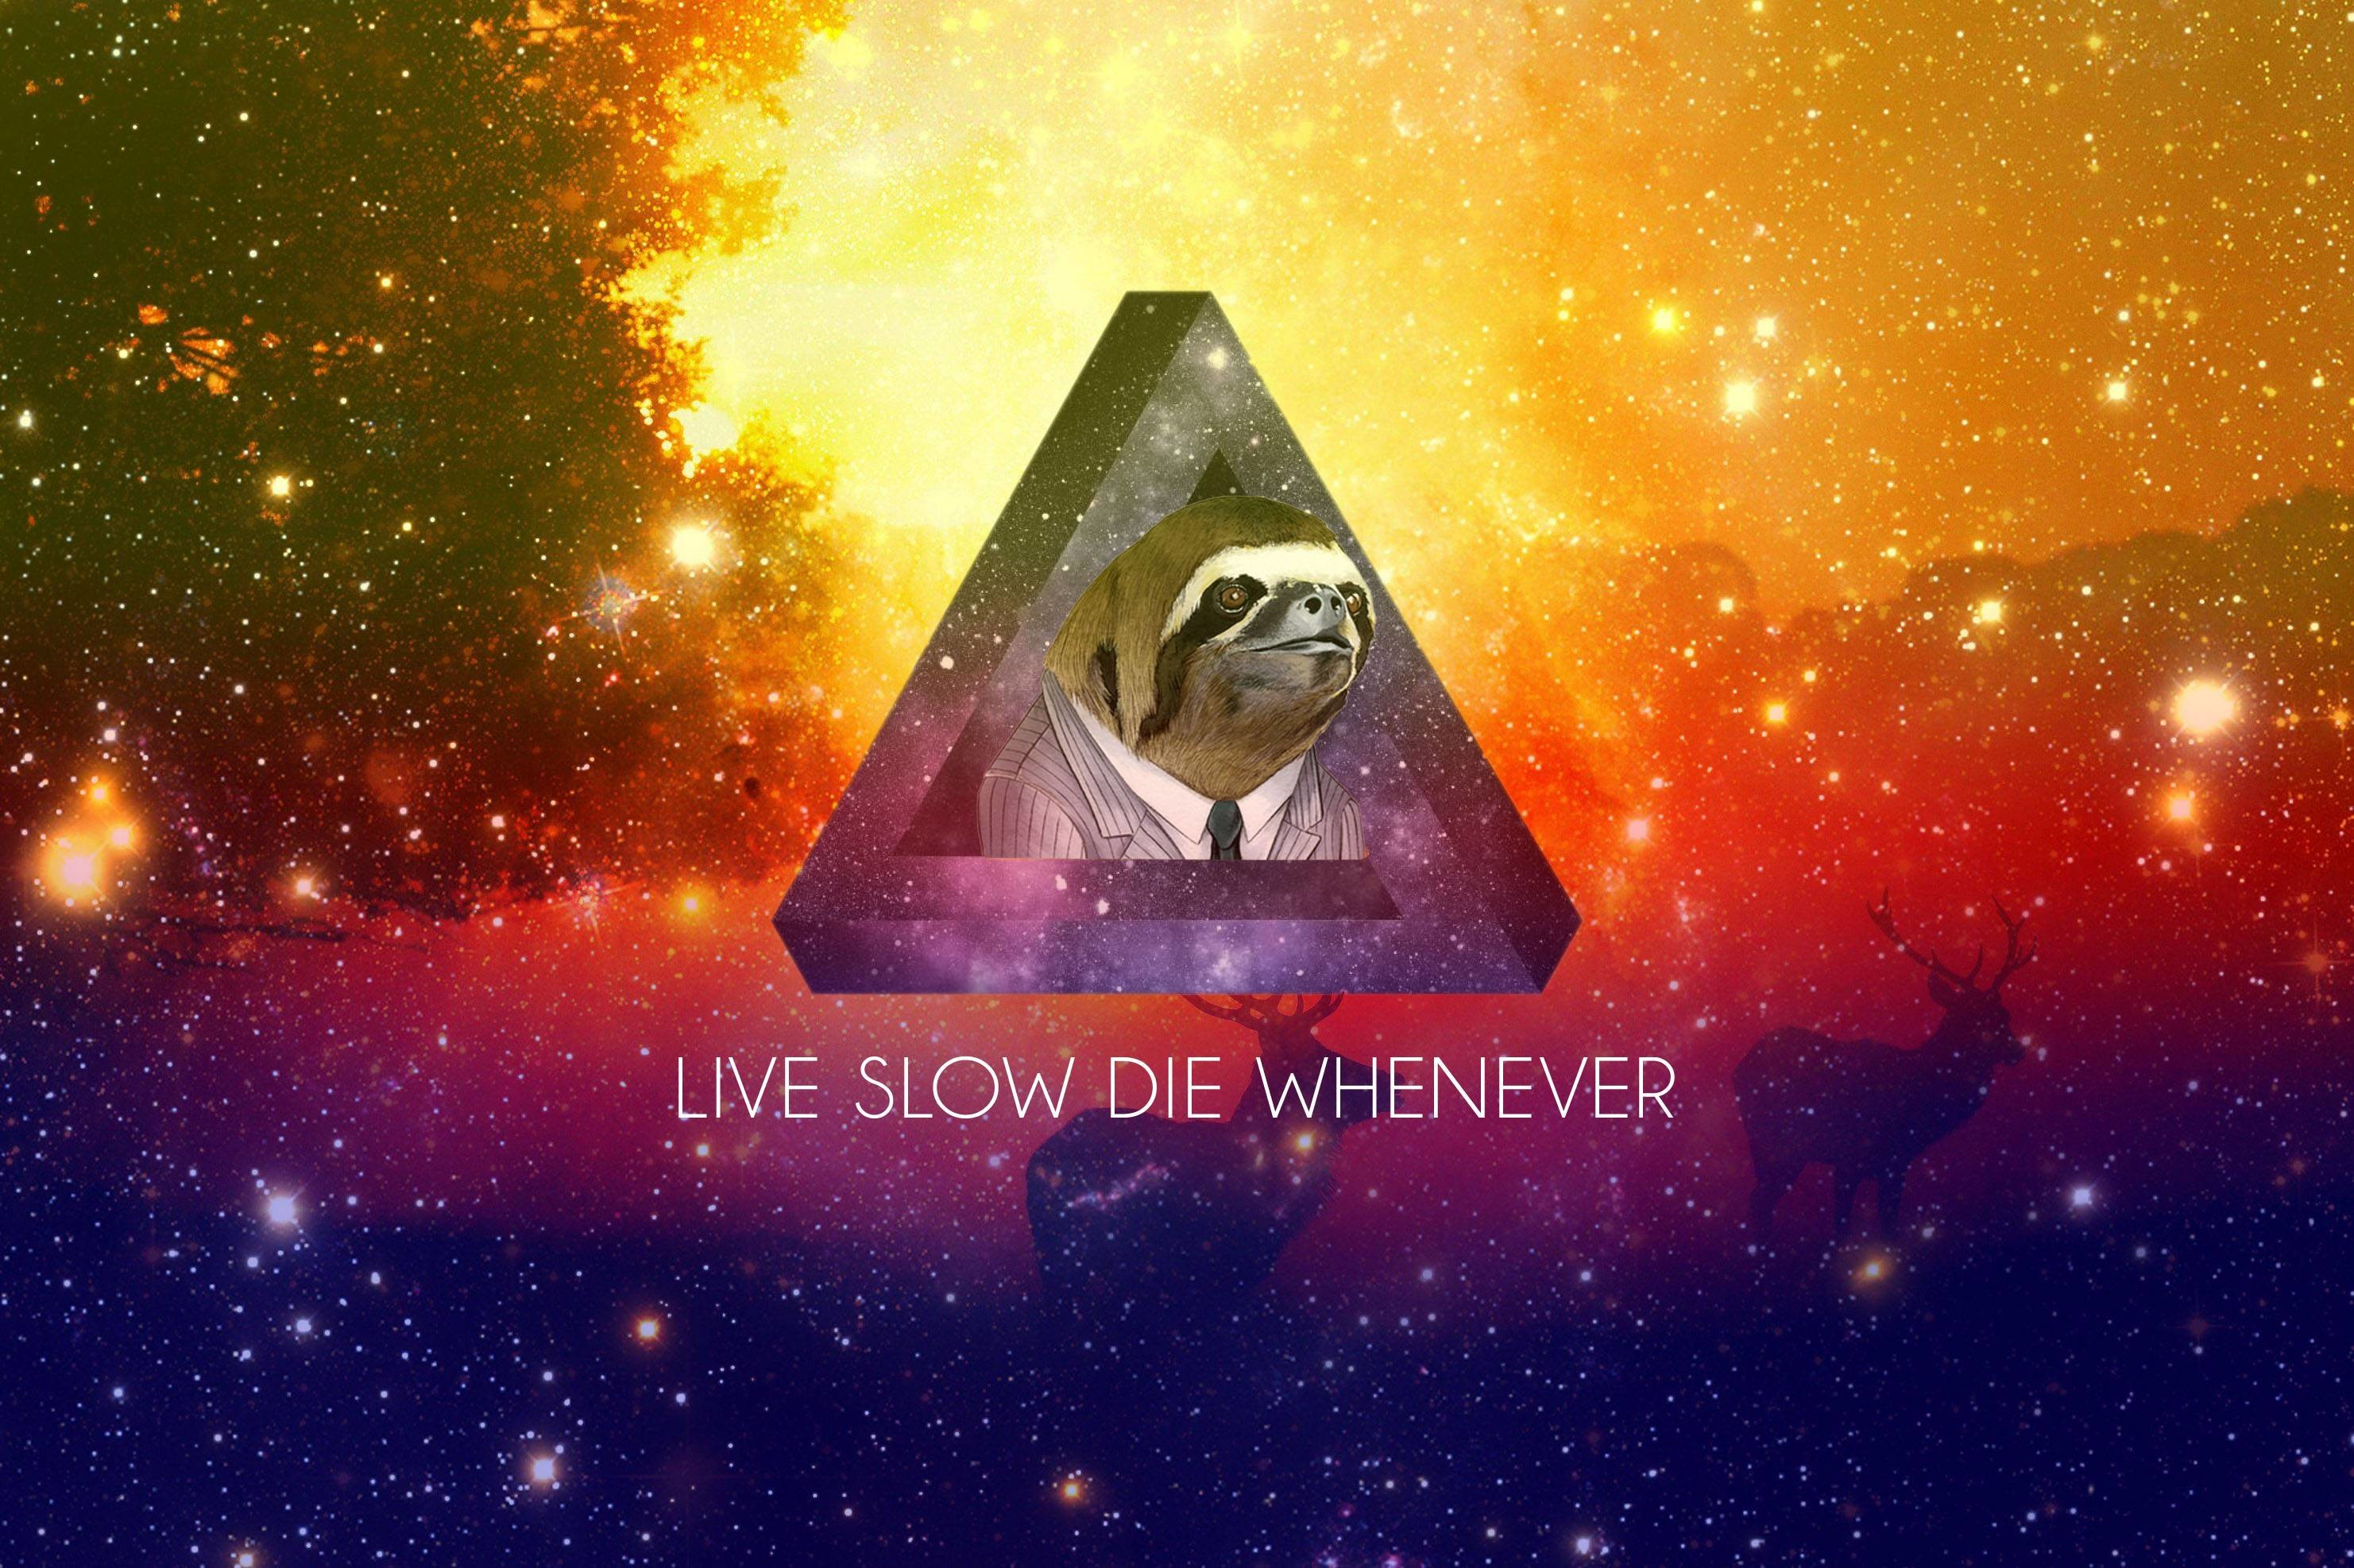 A small collection of Sloth wallpapers